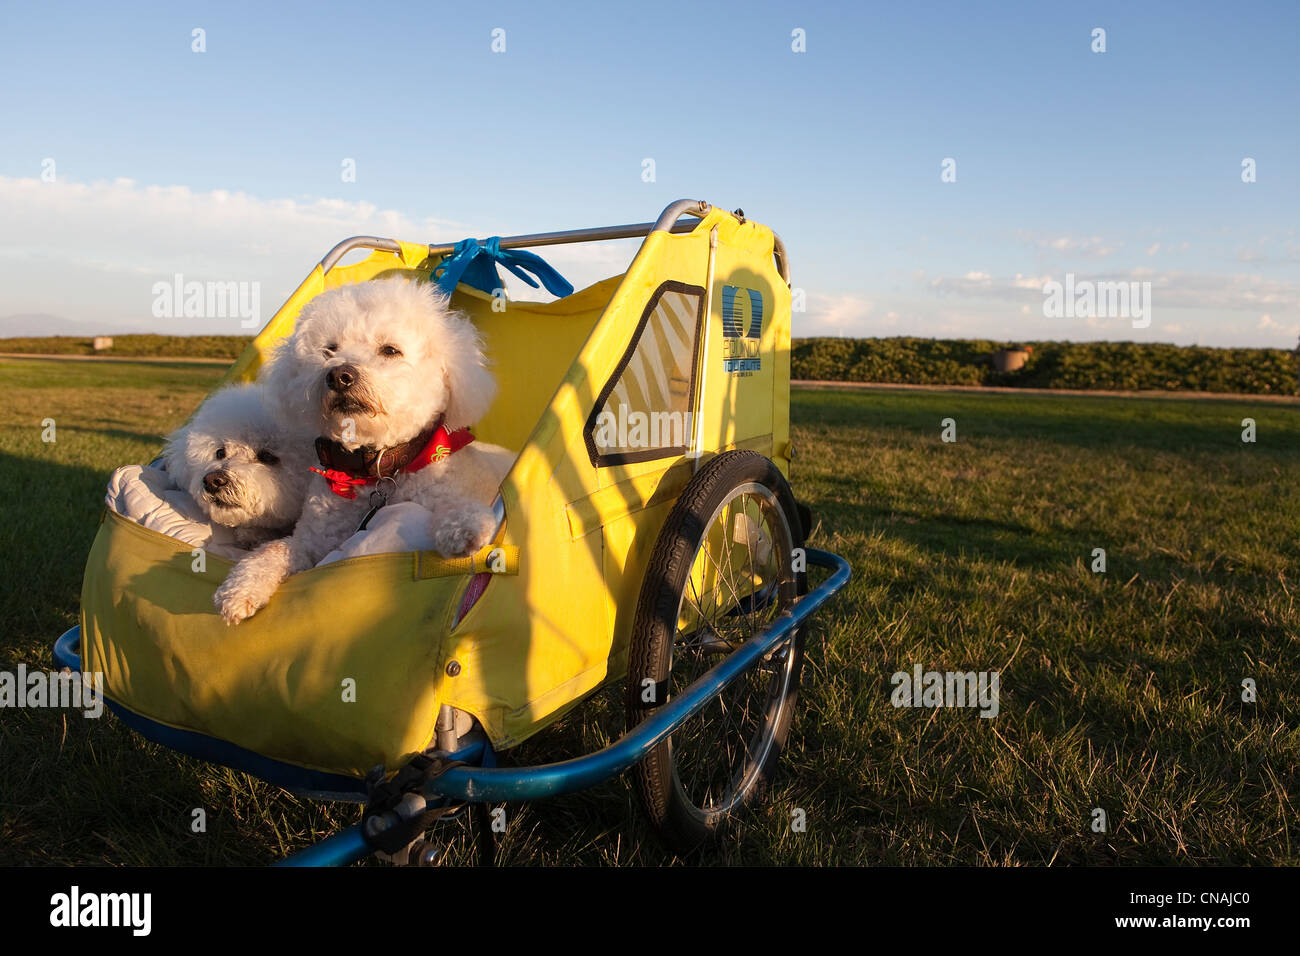 United States, California, Santa Barbara, toy poodles in a bicycle carriole - Stock Image